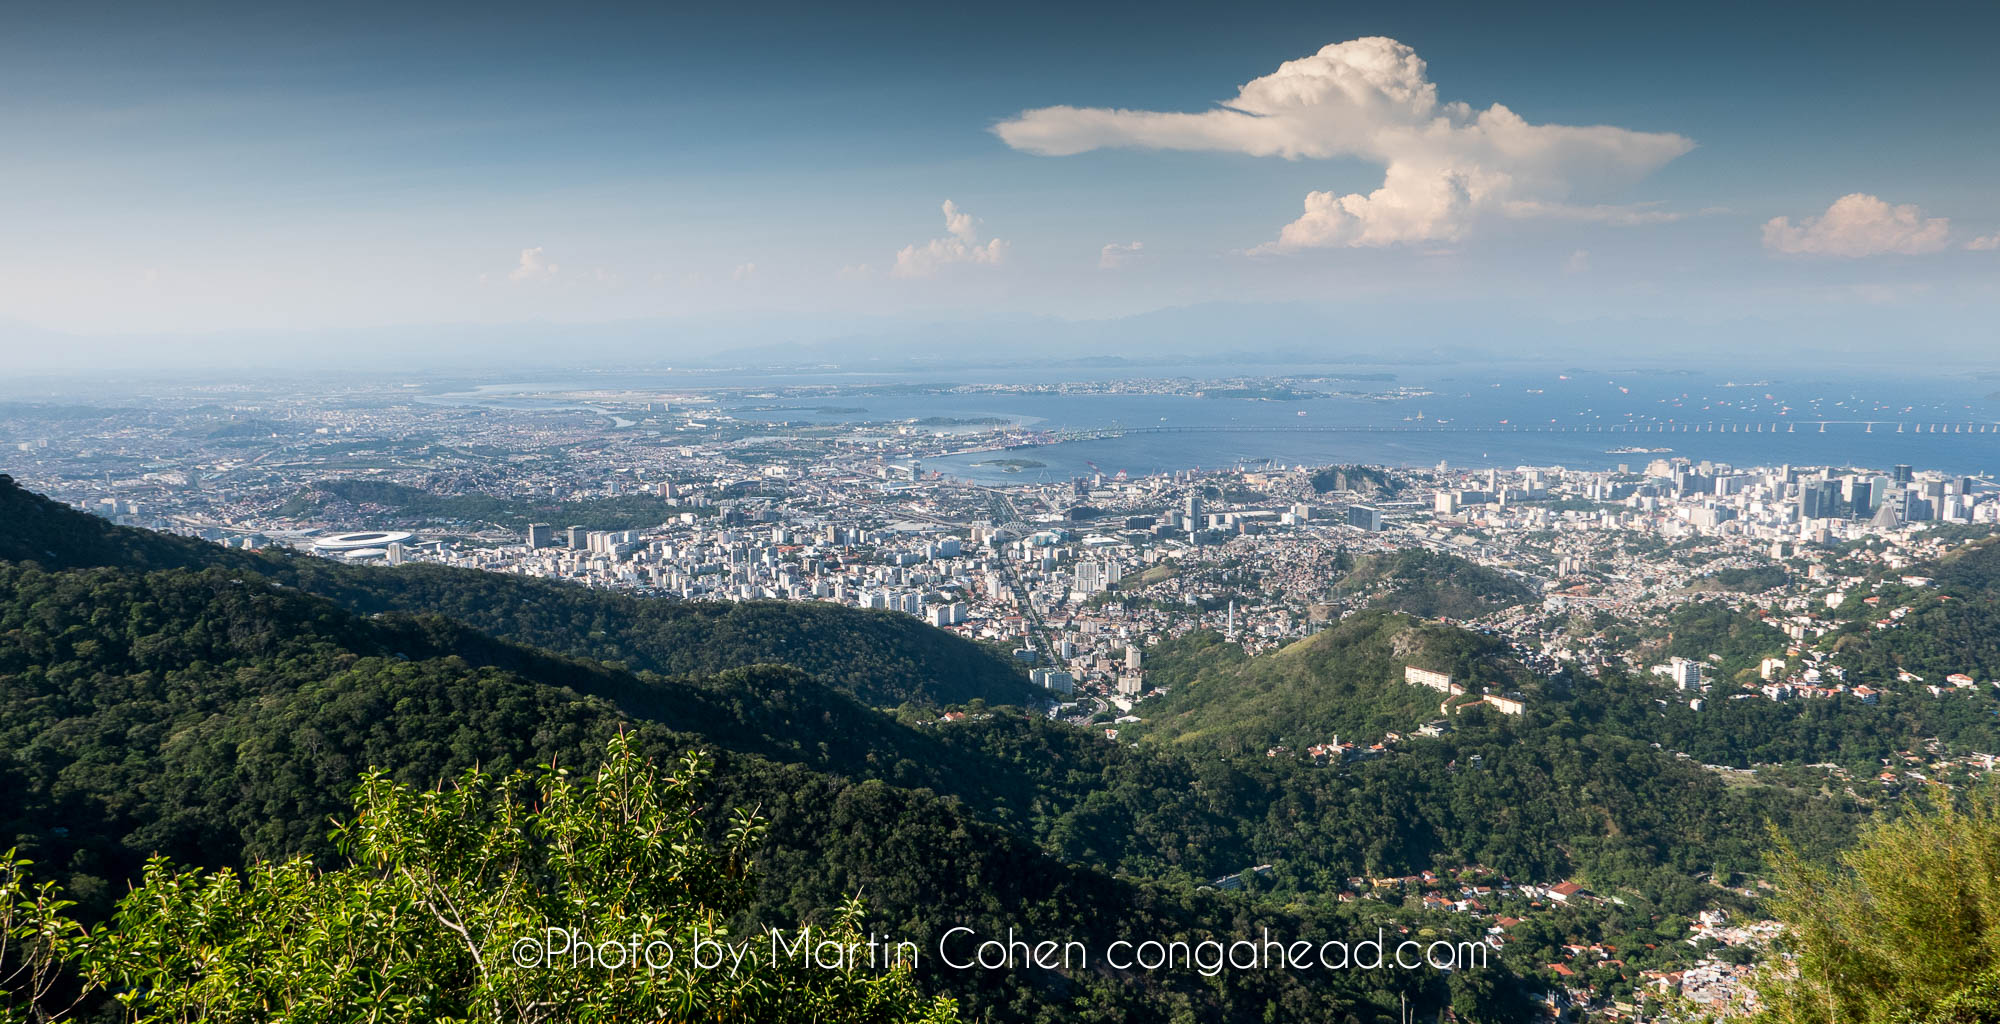 A view from Corcovado with the famous soccor stadium, Maracana off to the left